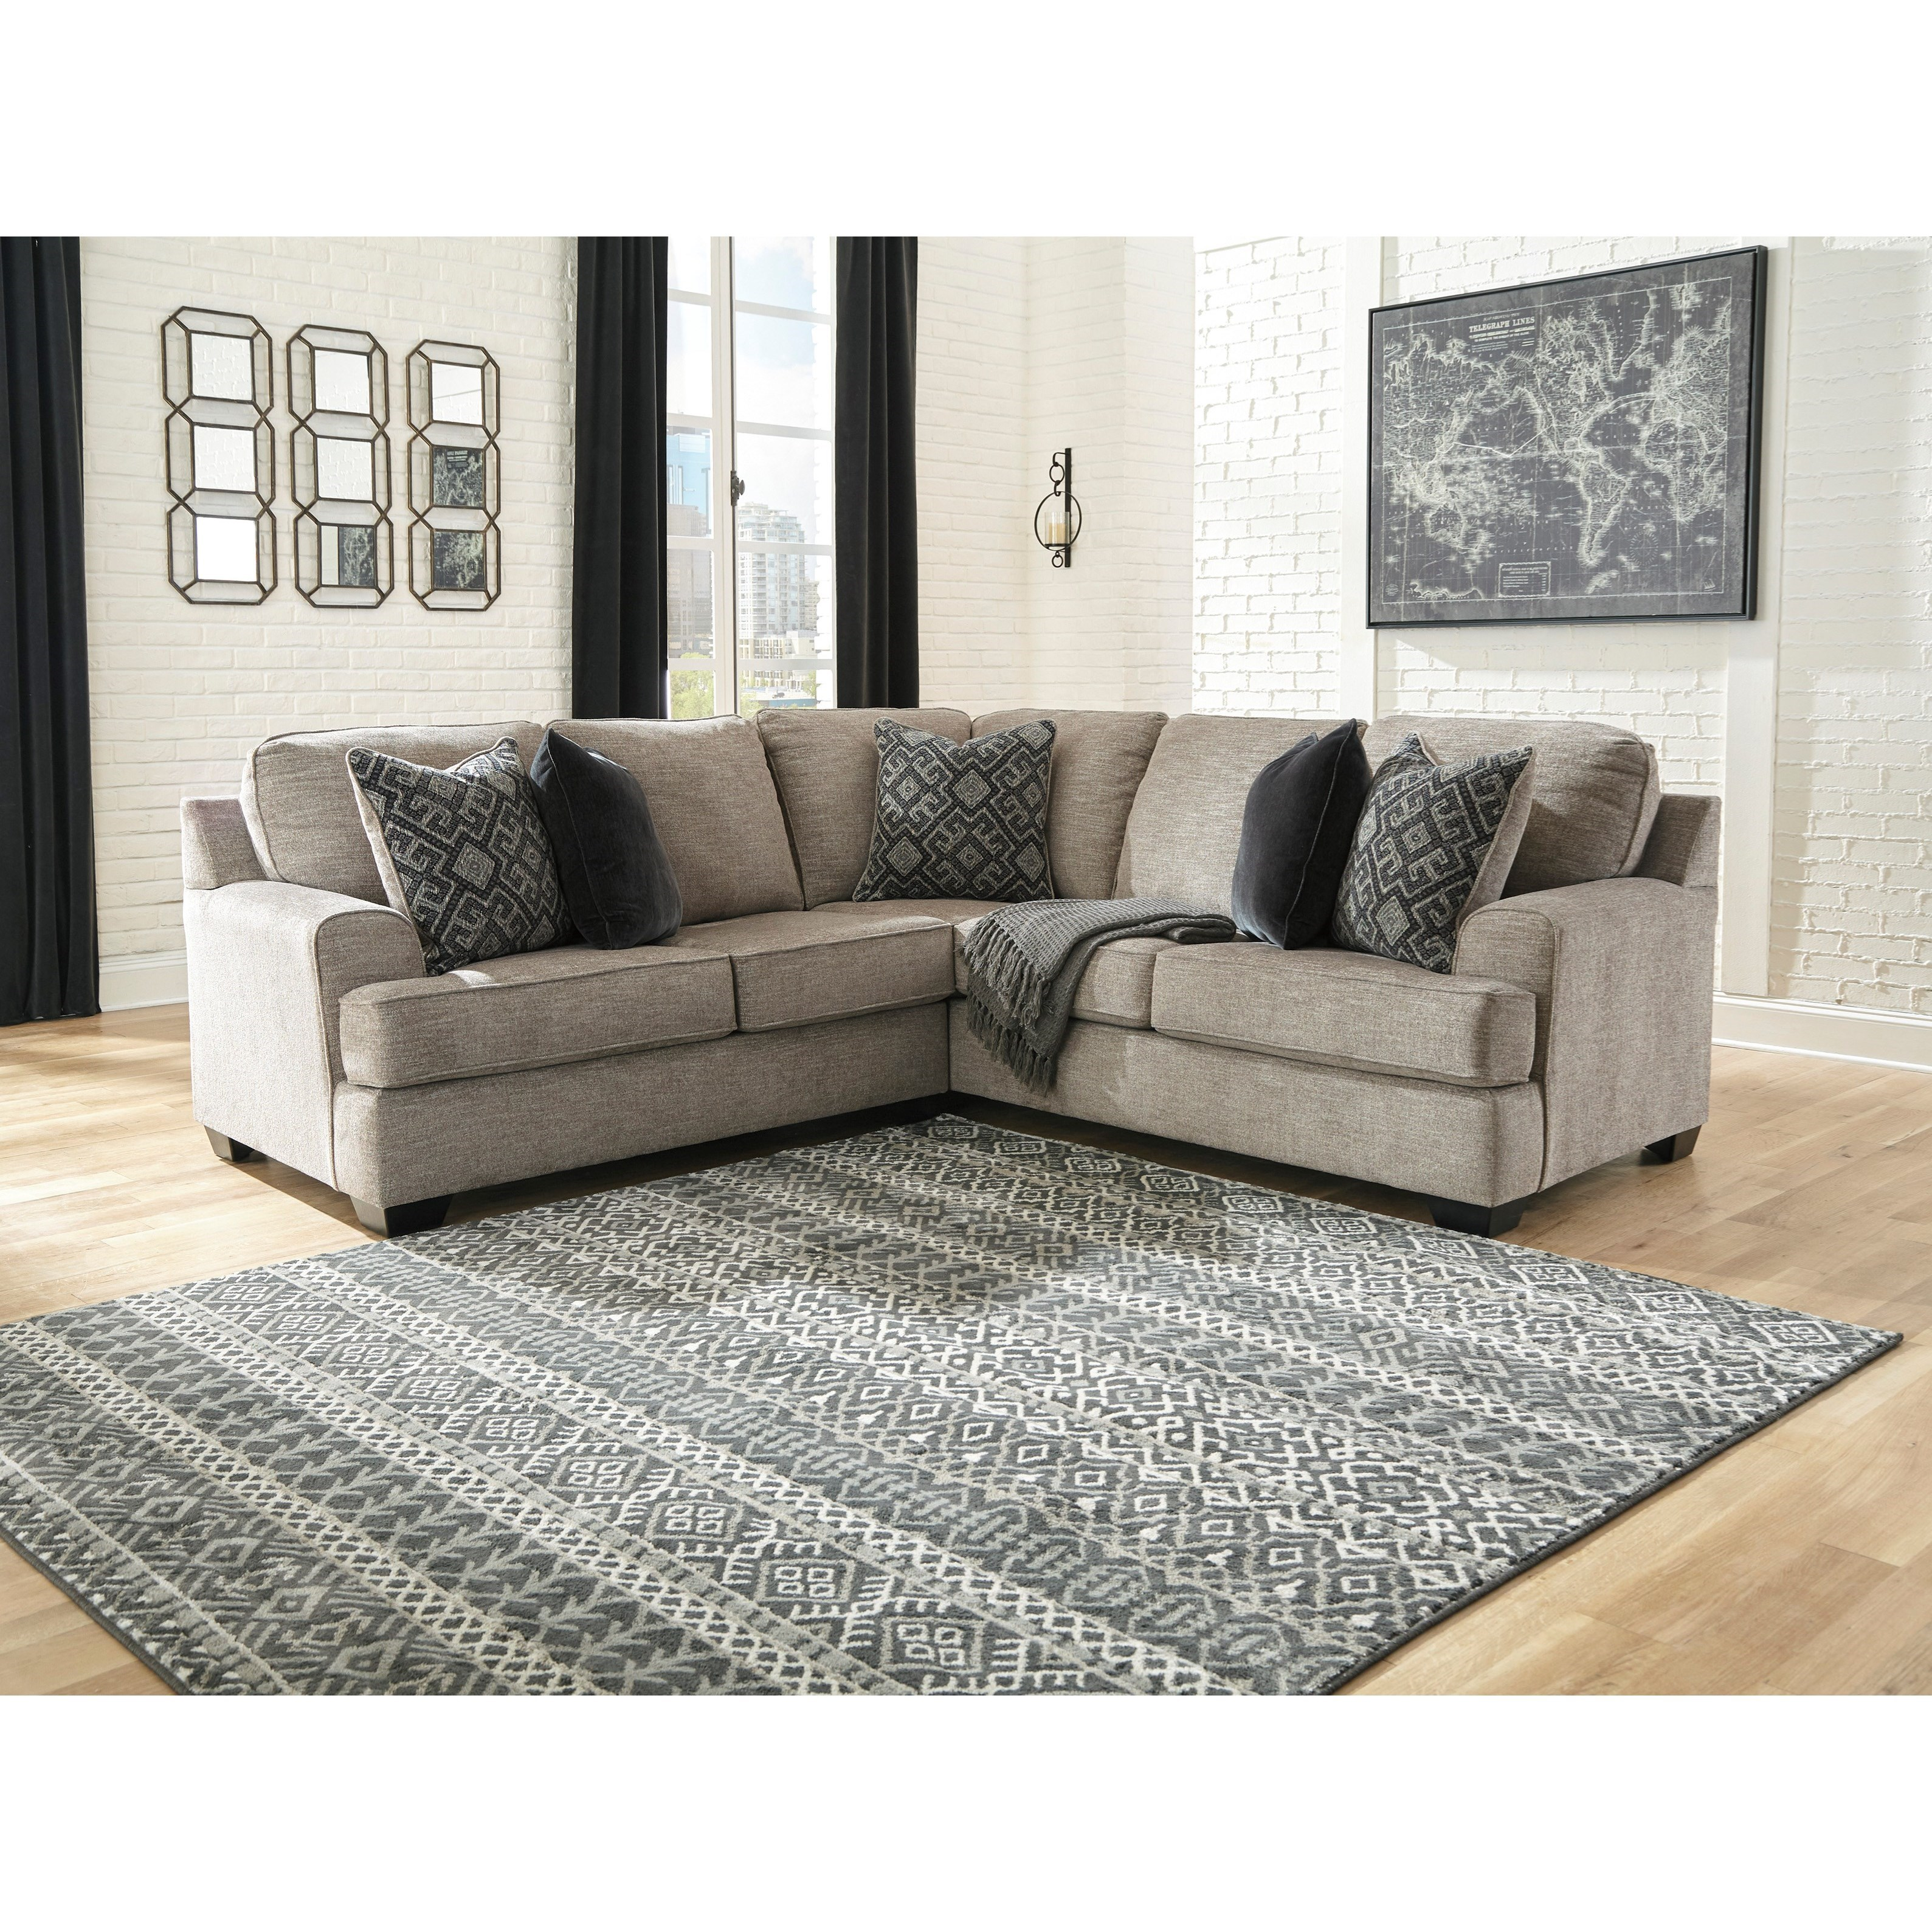 Bovarian 2-Piece Sectional by Signature Design by Ashley at HomeWorld Furniture